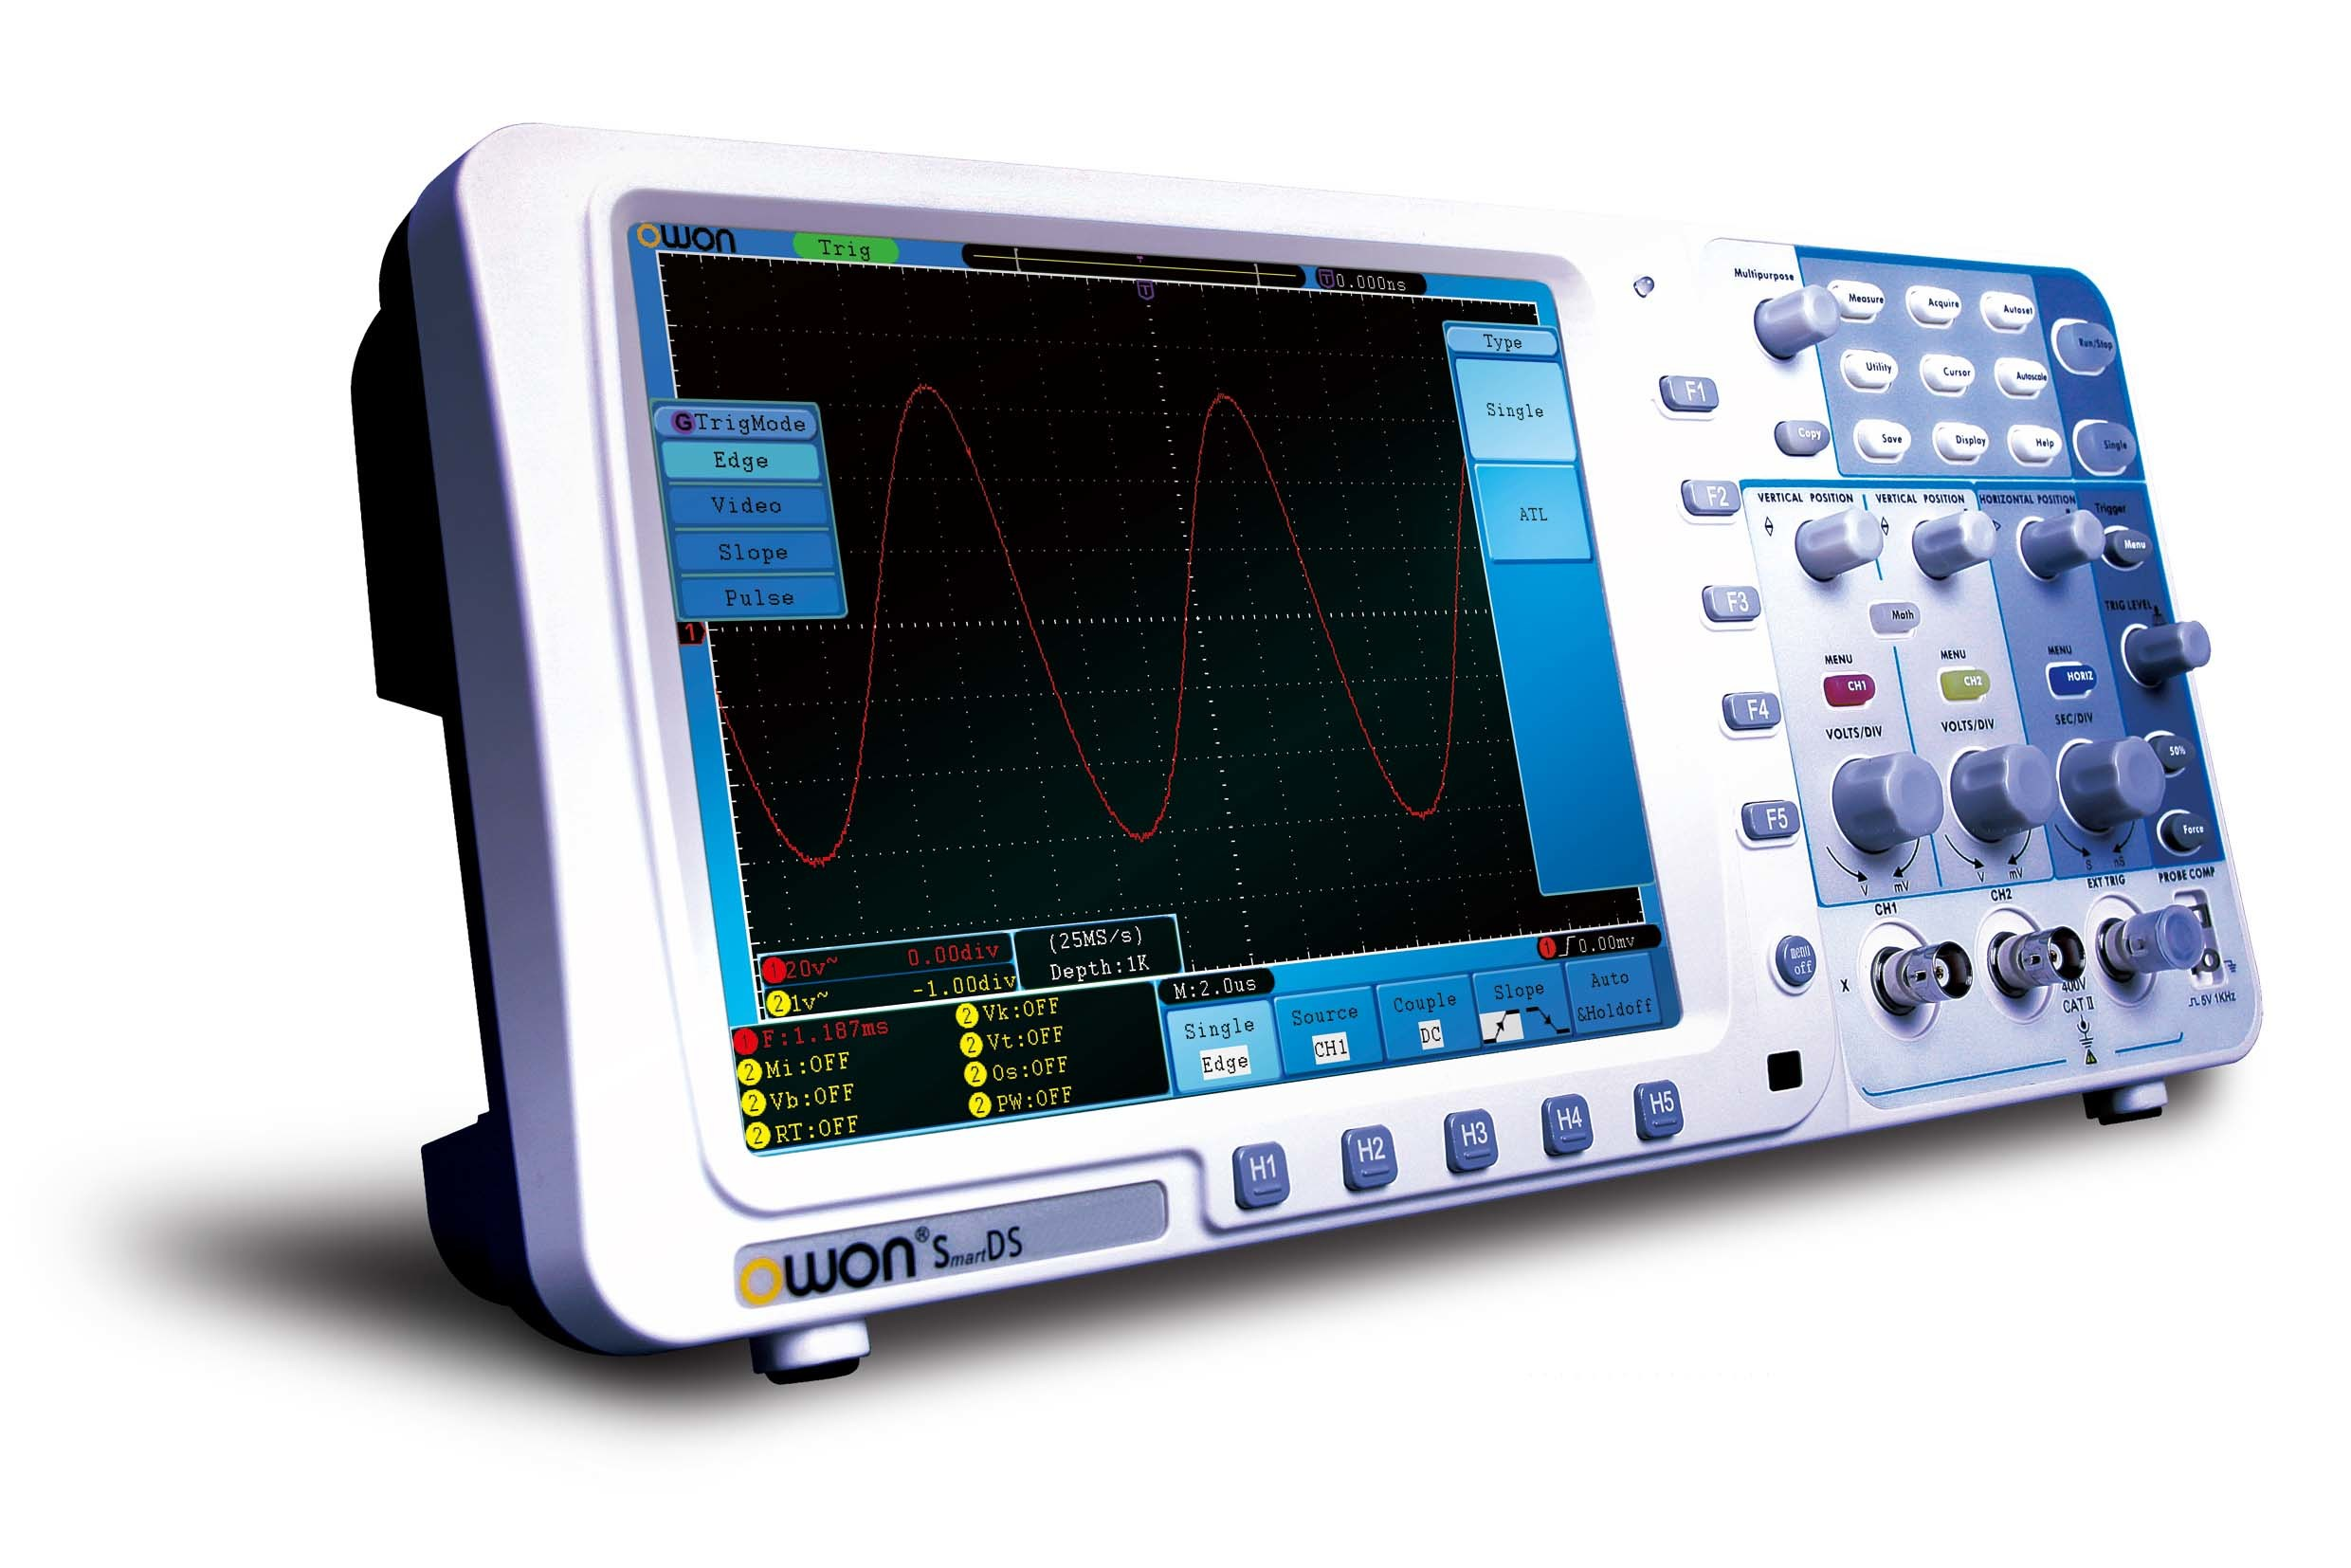 OWON 100MHz 1GS/s Deep Memory Digital Oscilloscope (SDS7102)